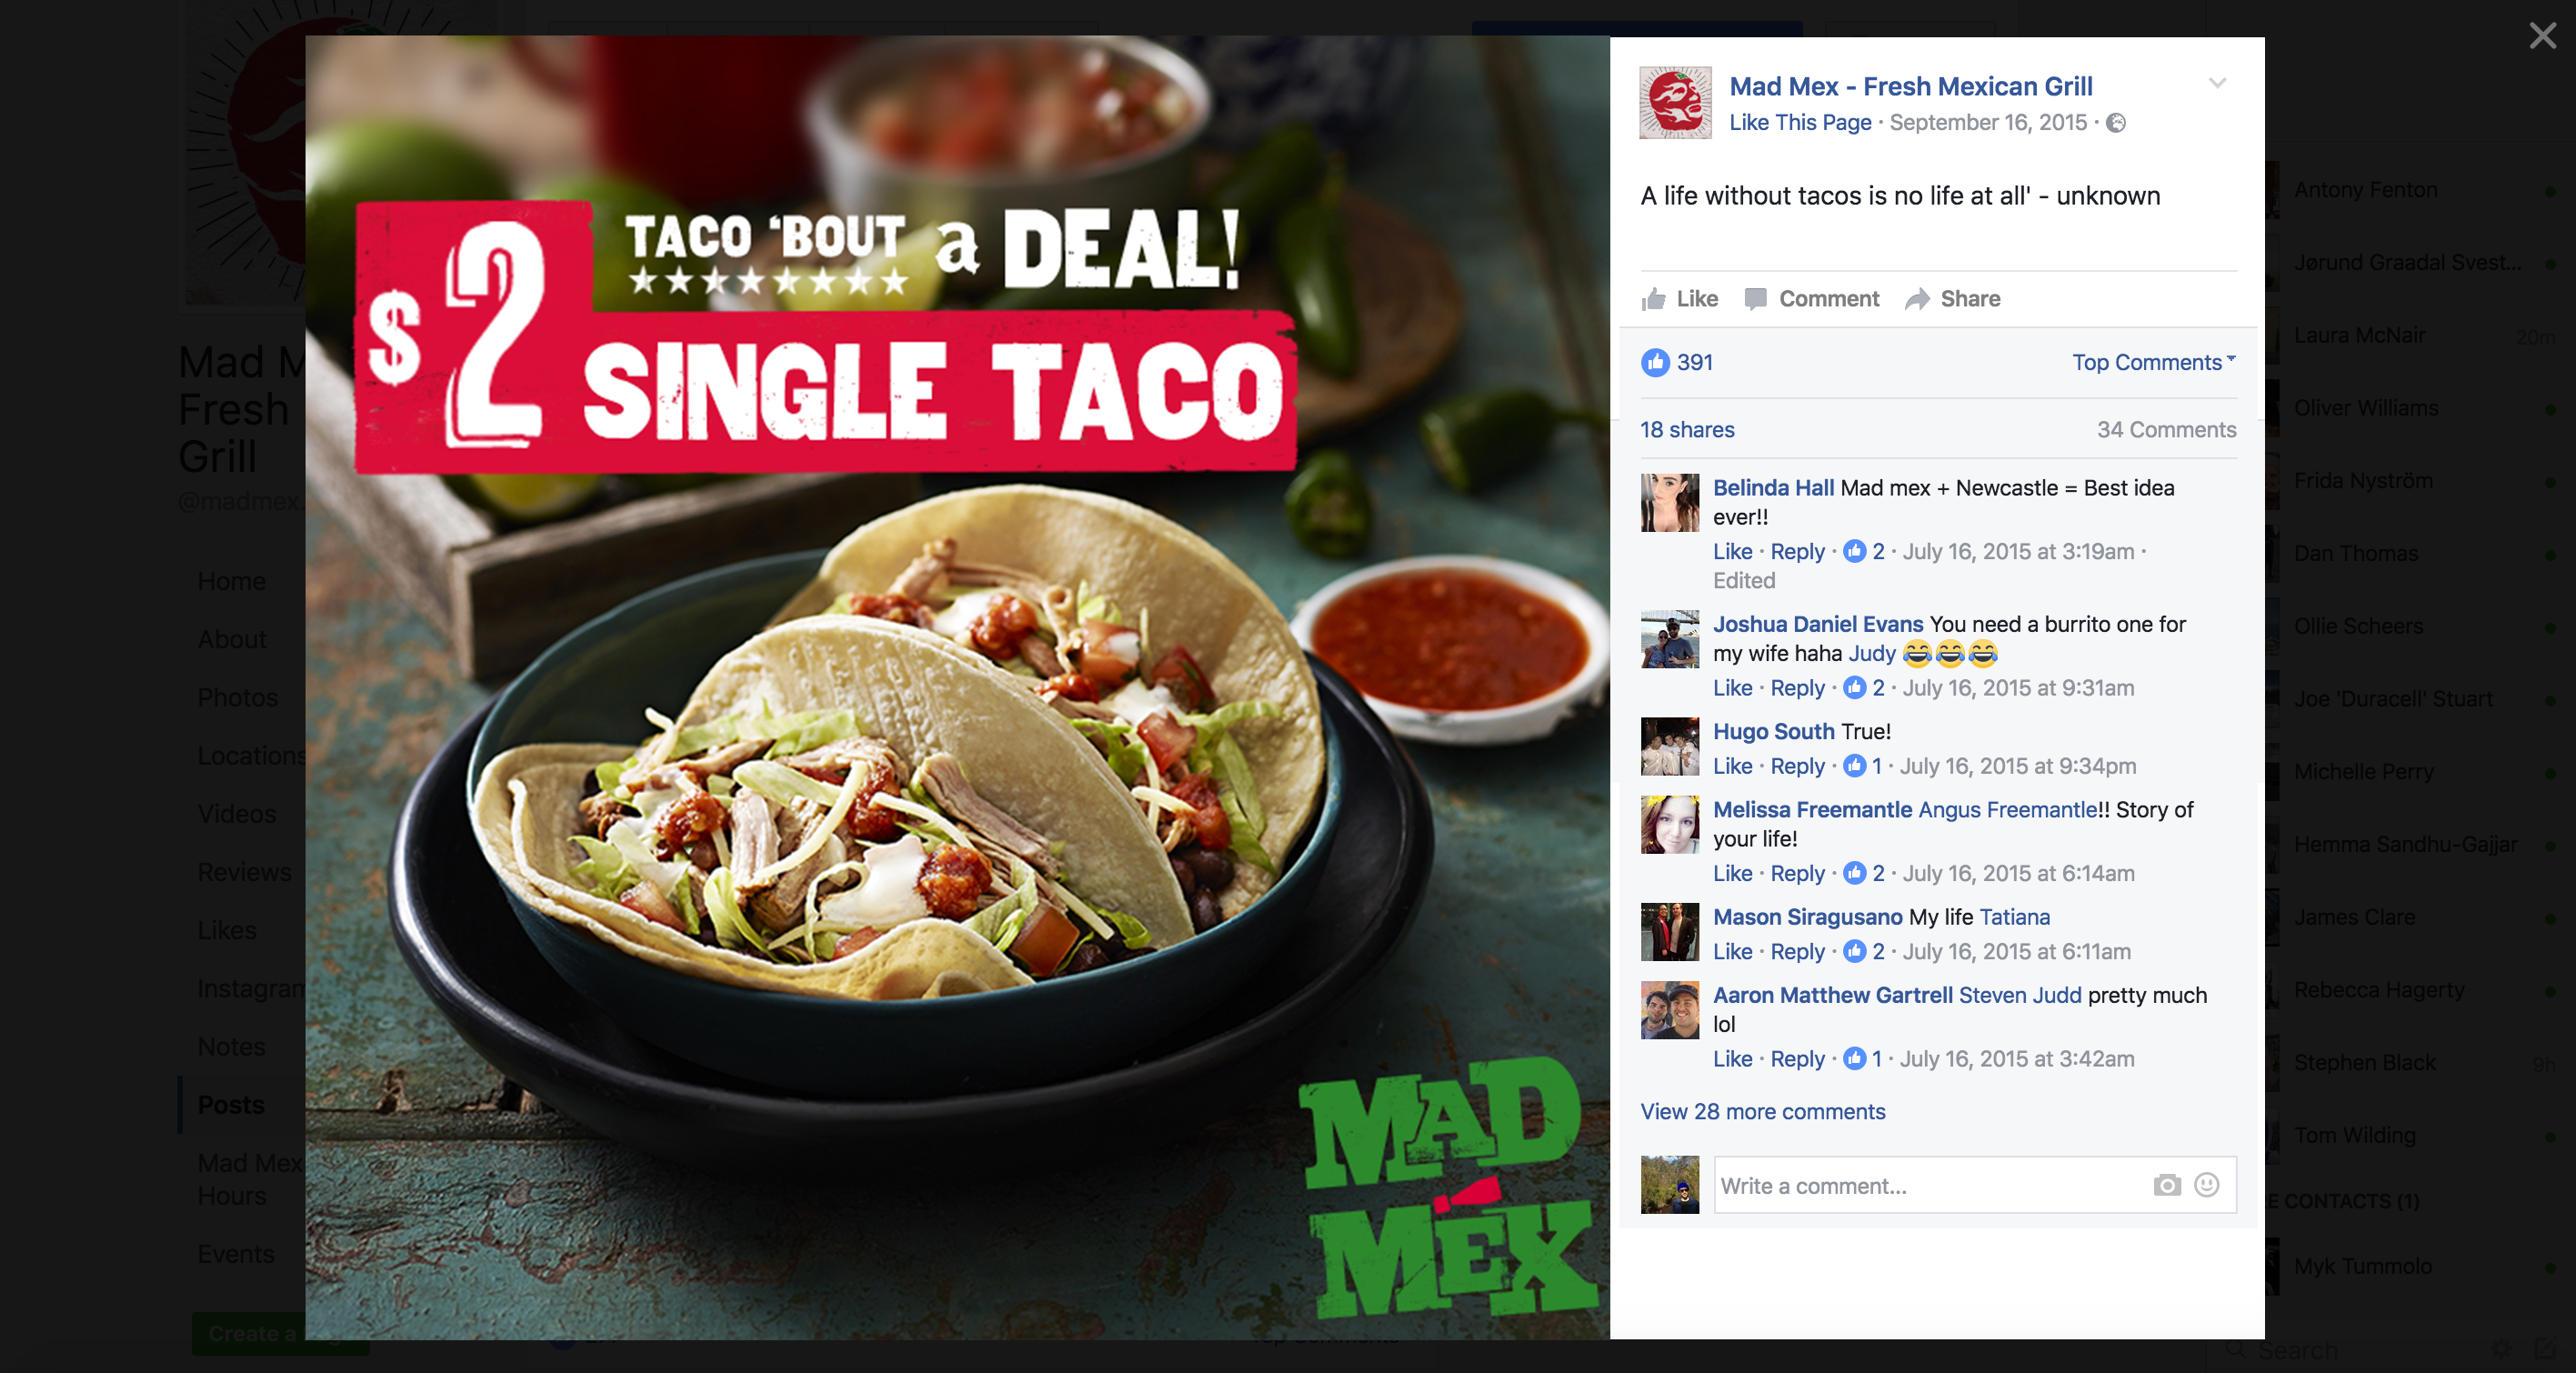 Mad mexsocial post design